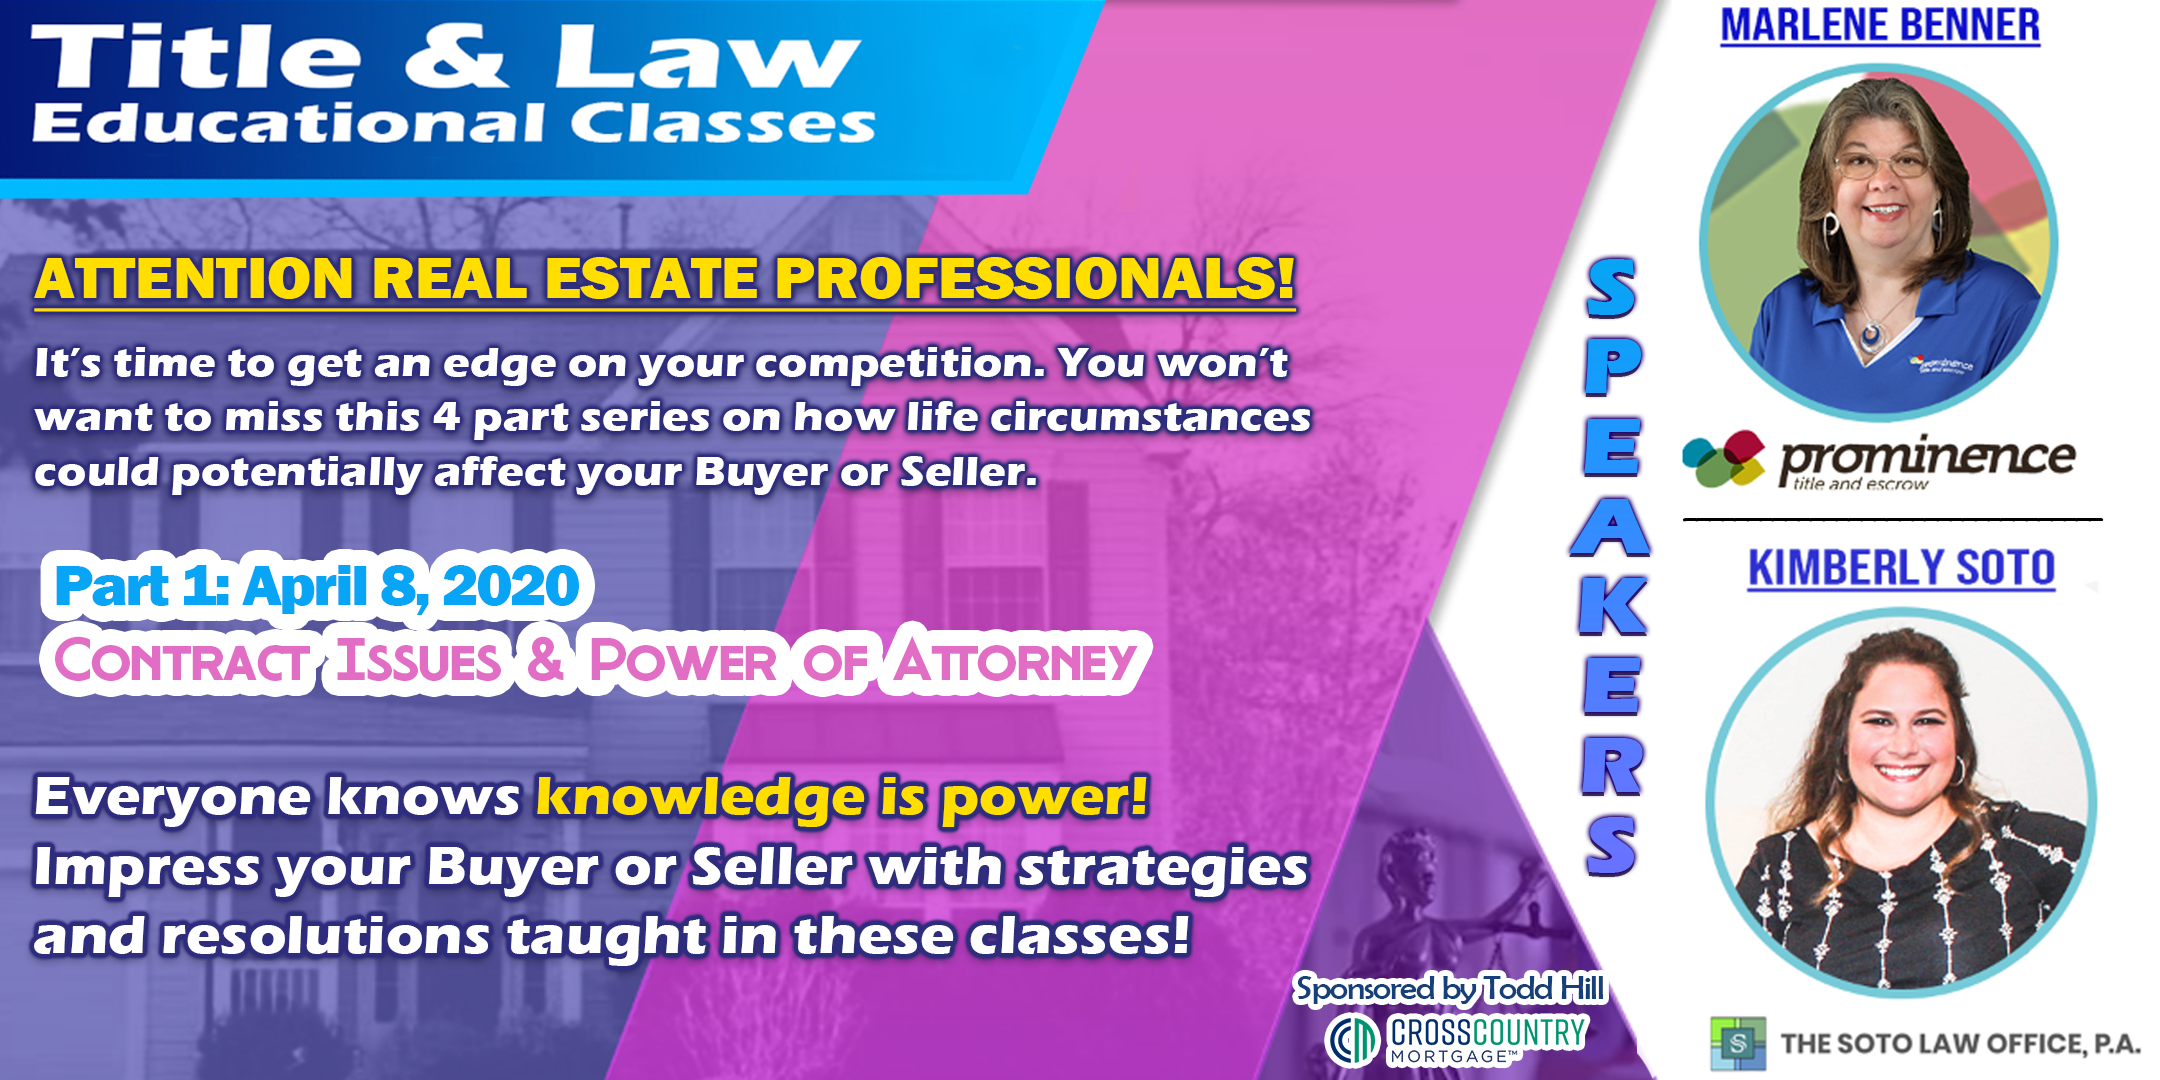 Title & Law Educational Classes - Part I of IV: Contract Issues & Power of Attorney